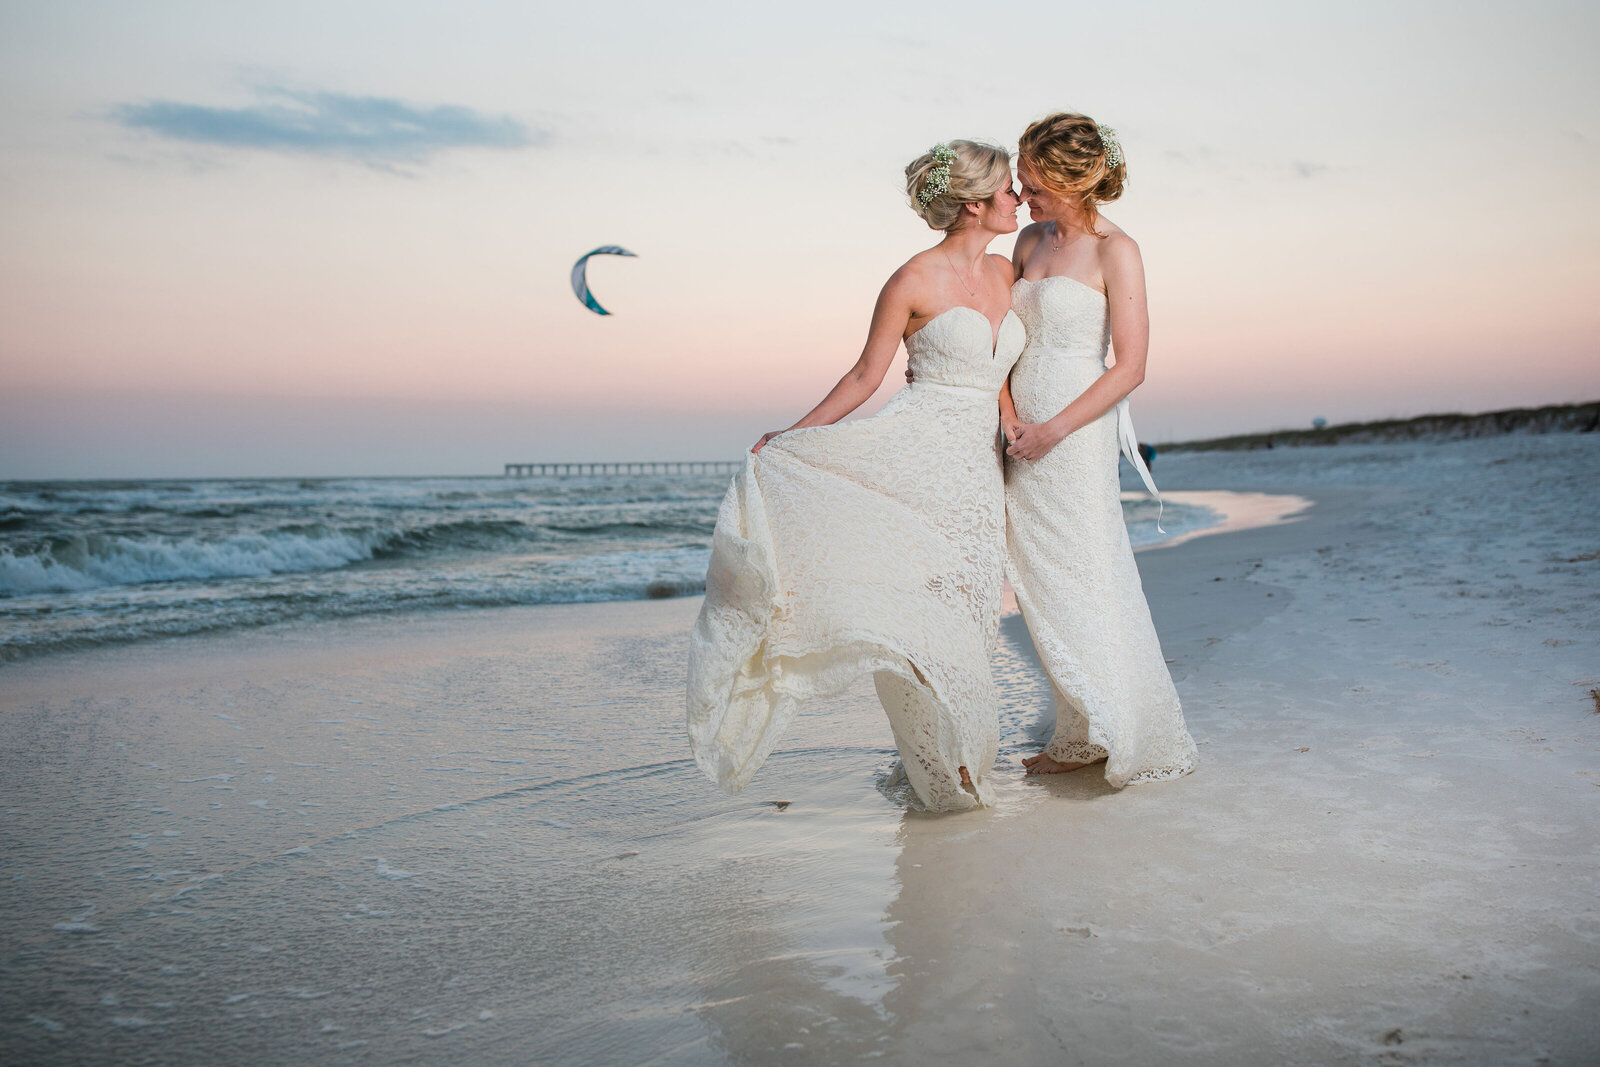 Navarre-lgbt-Beach-Elopement-Photographer-Adina-Preston-Photography-October-2020-120